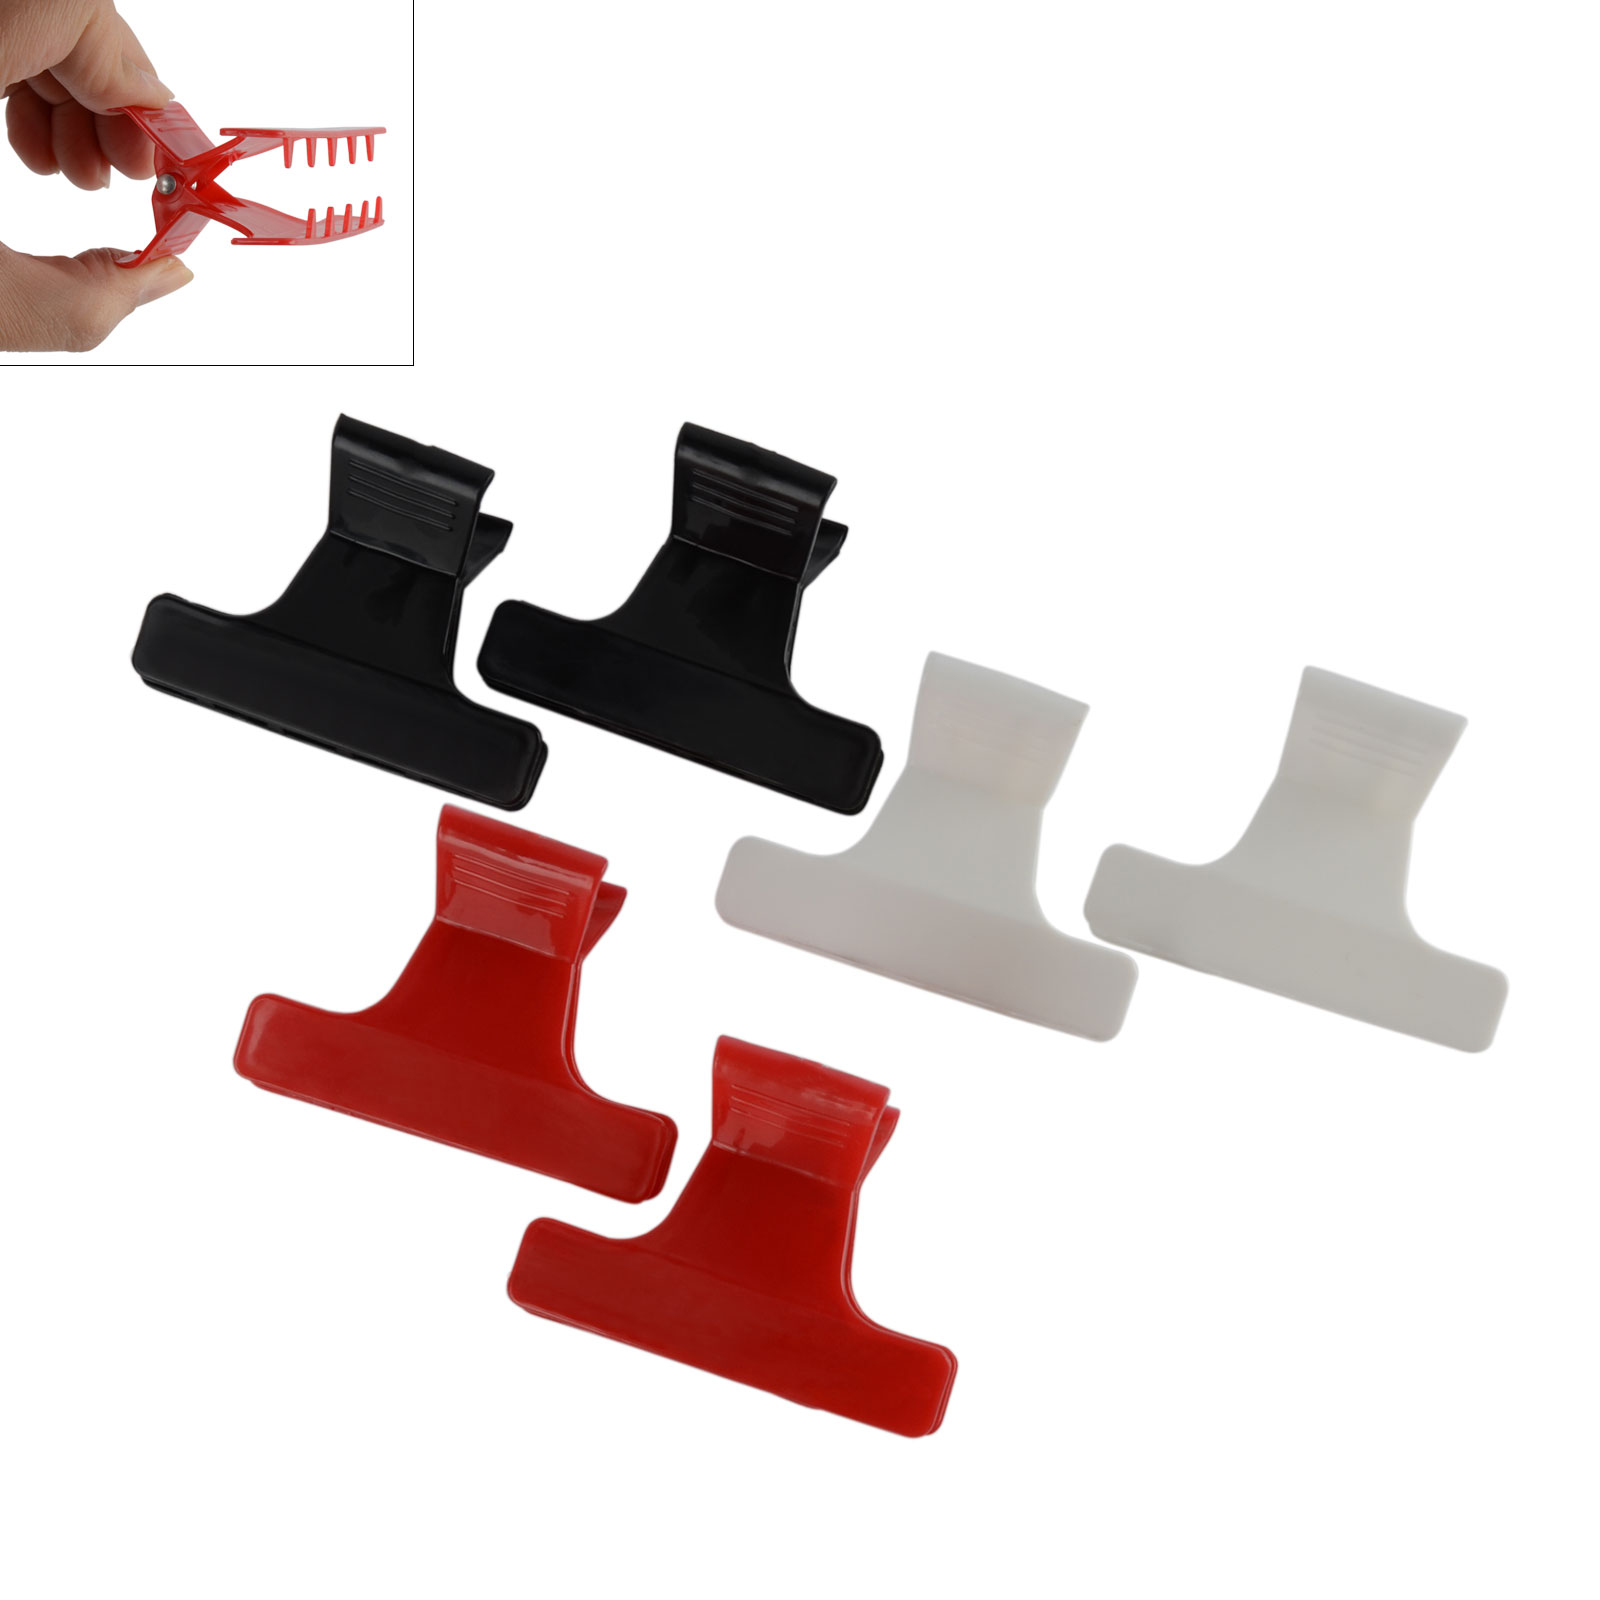 6pcs Hairdressing Salon Claw Clips Multi-color Butterfly Clamp Claw Sectioning Hair Jaw Clips For Styling Tool Mayitr